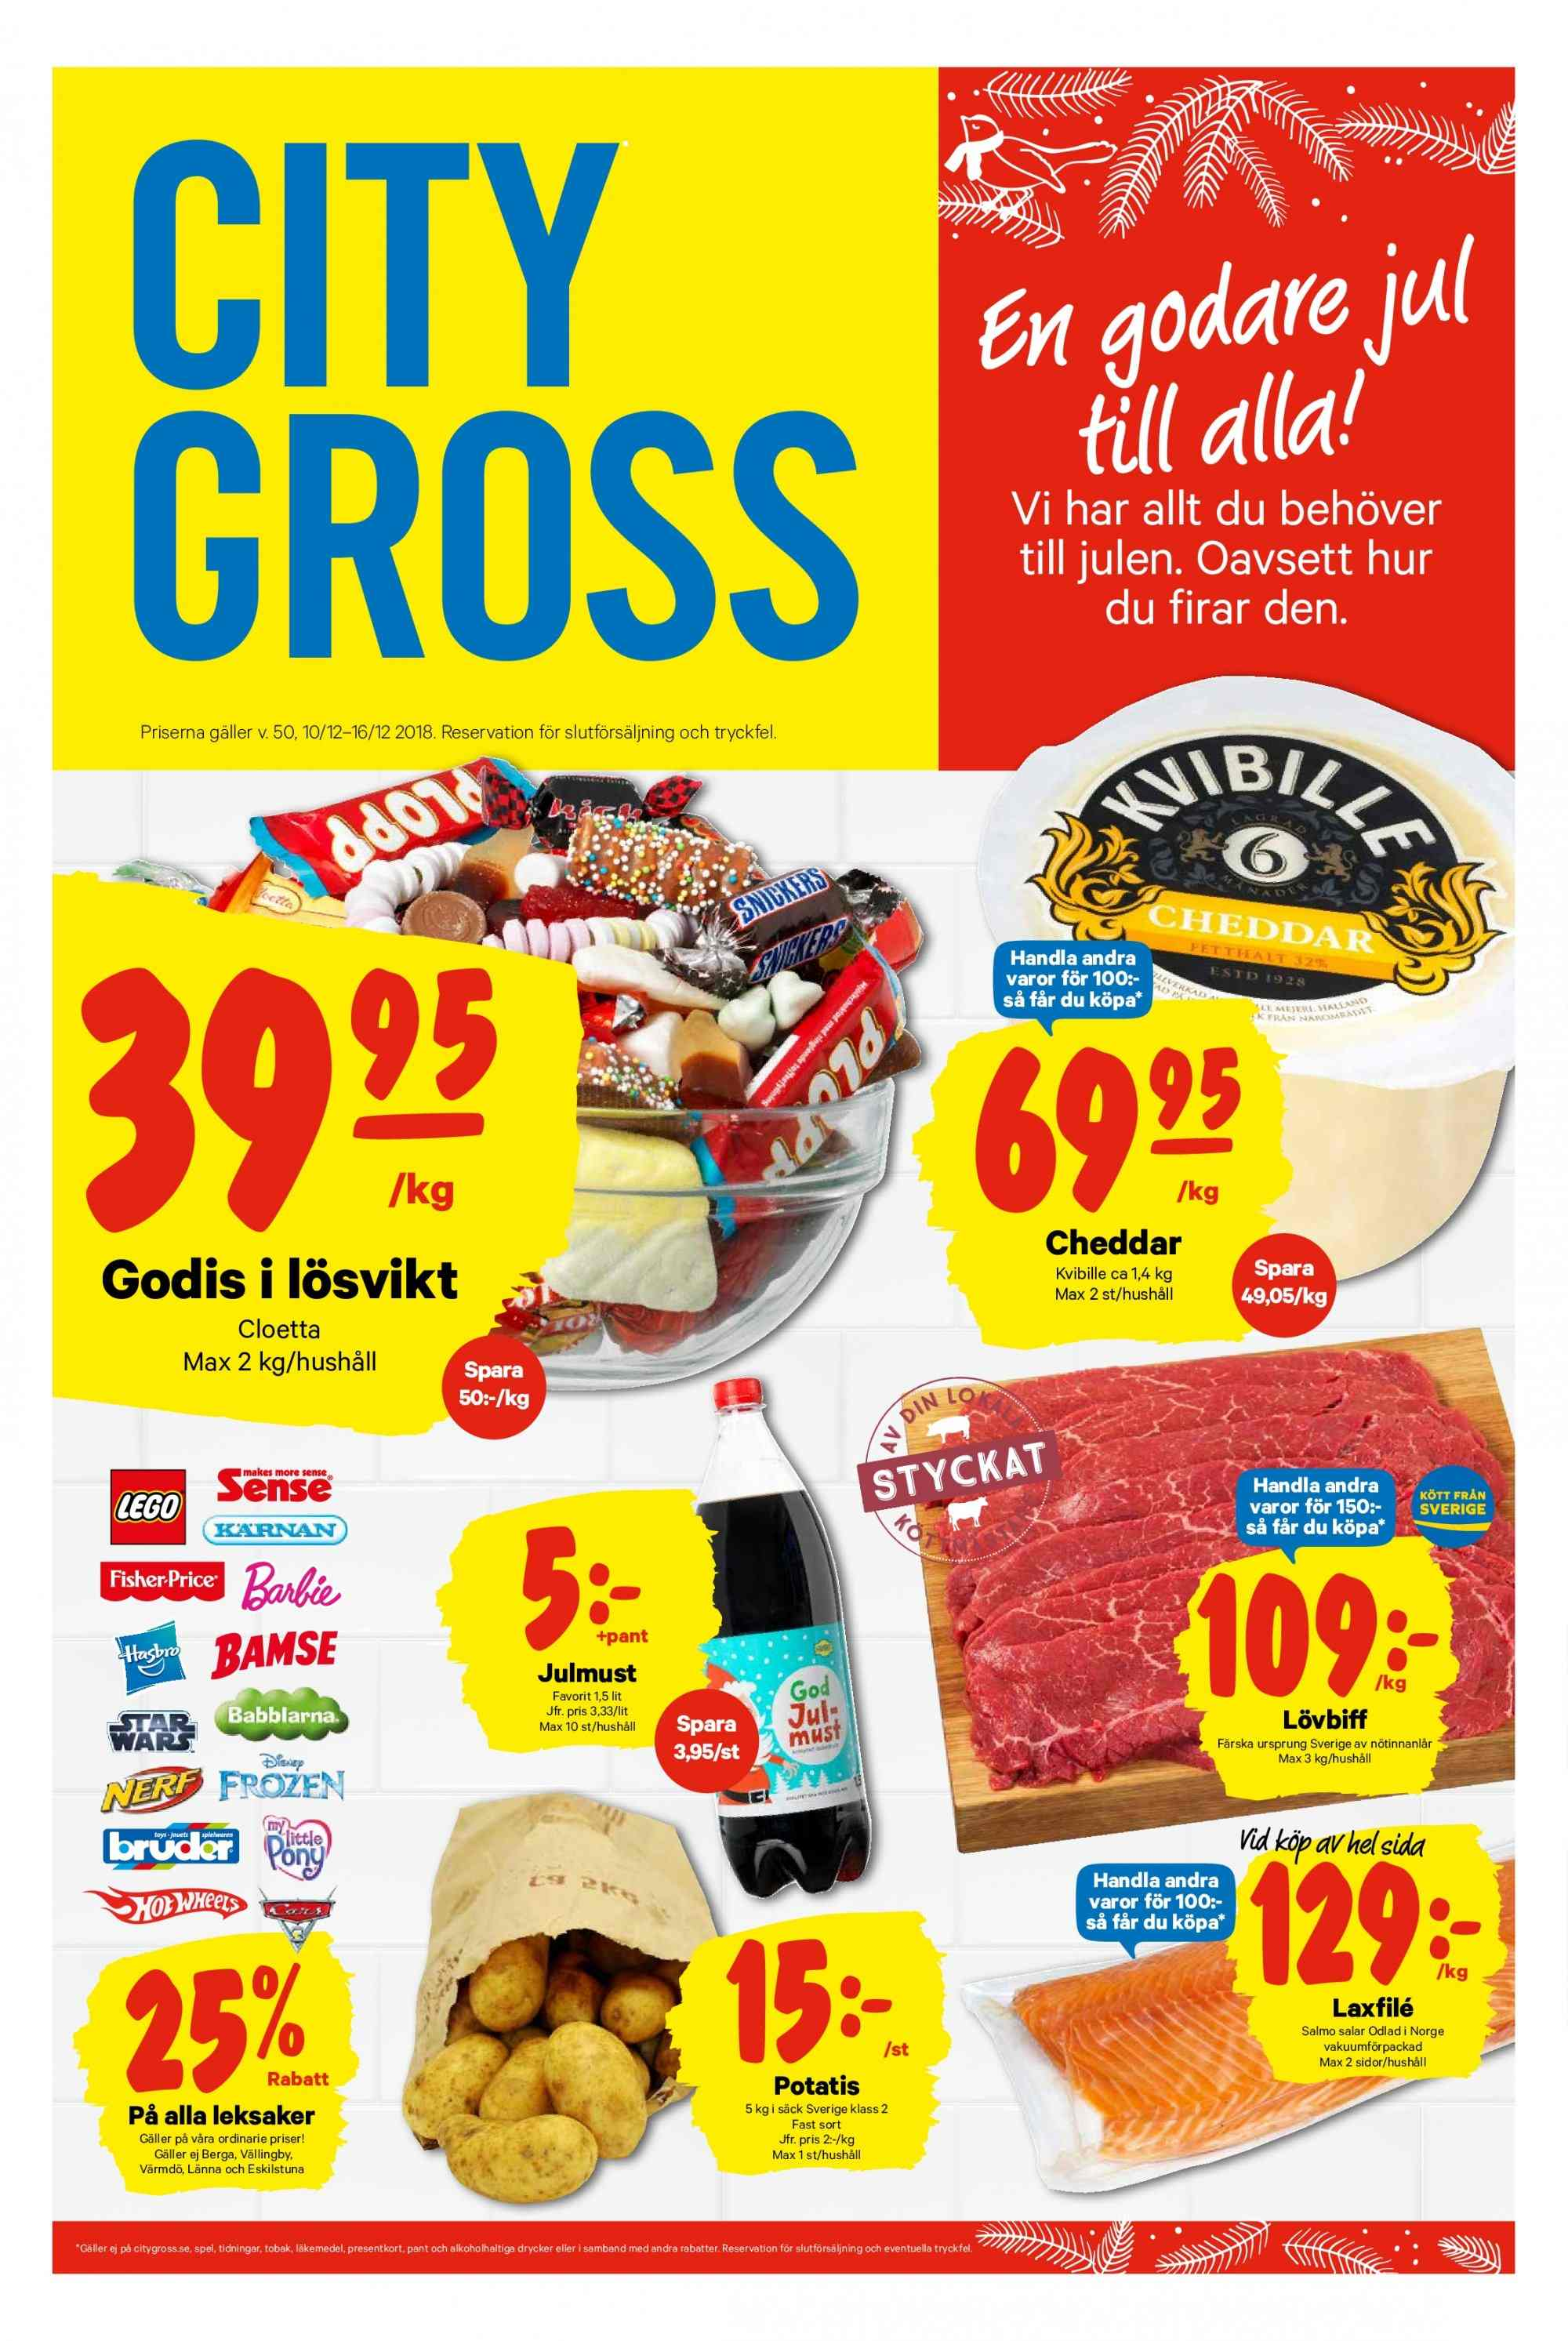 City Gross reklamblad - 10/12 2018 - 16/12 2018. Sida 1.